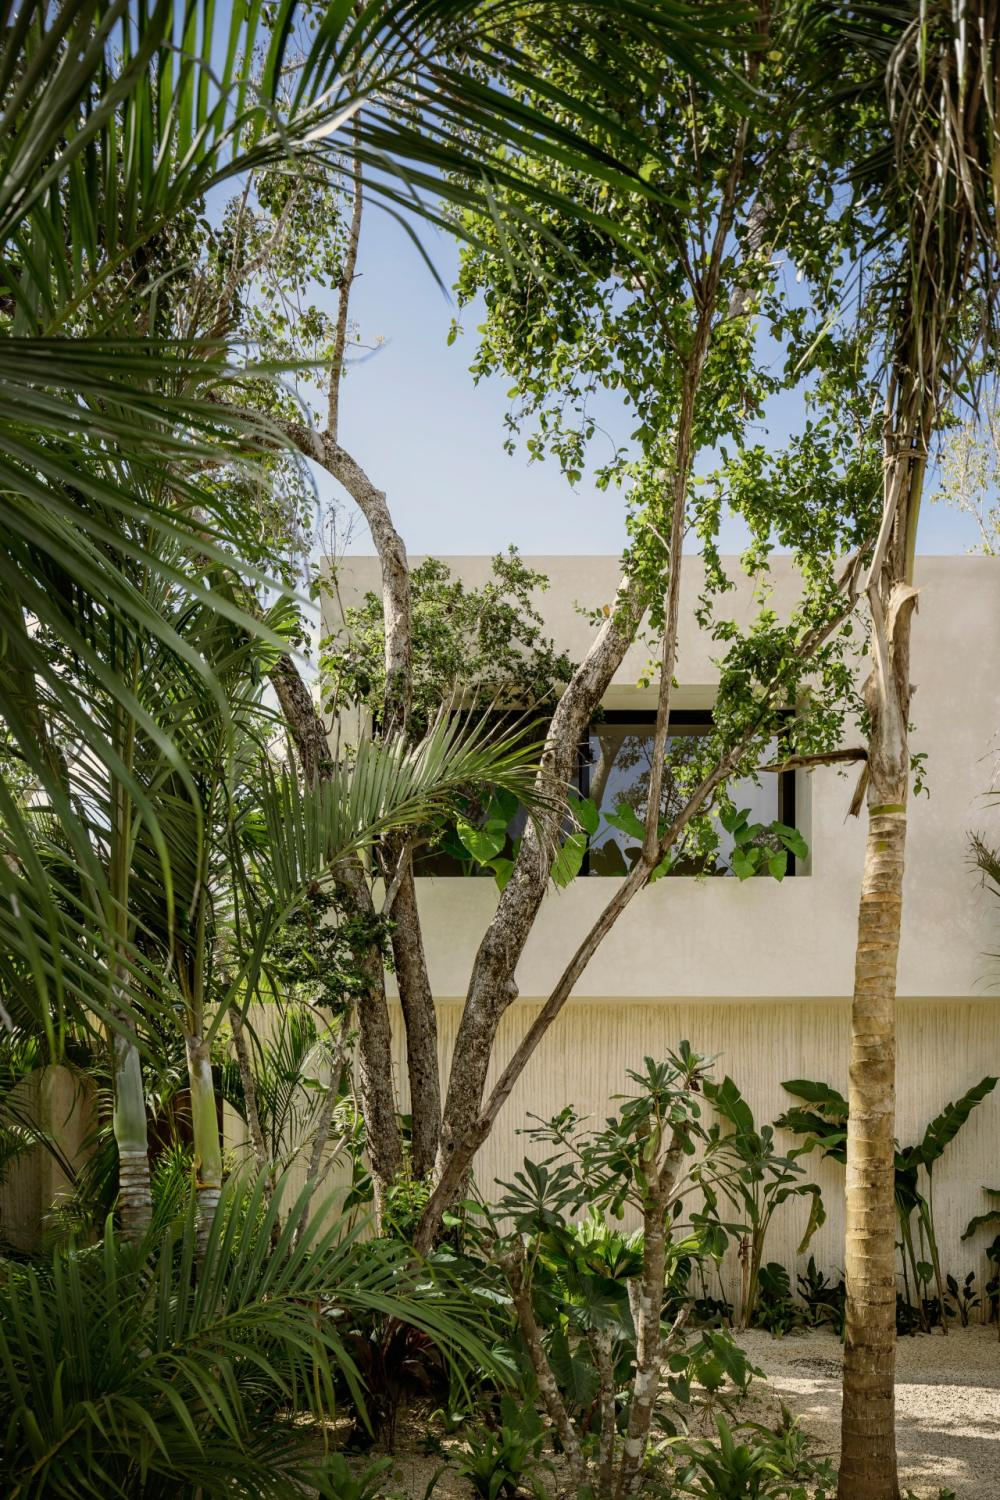 House tour: a peaceful, tropical holiday home in the trendy Mexican beach town of Tulum-18.jpg